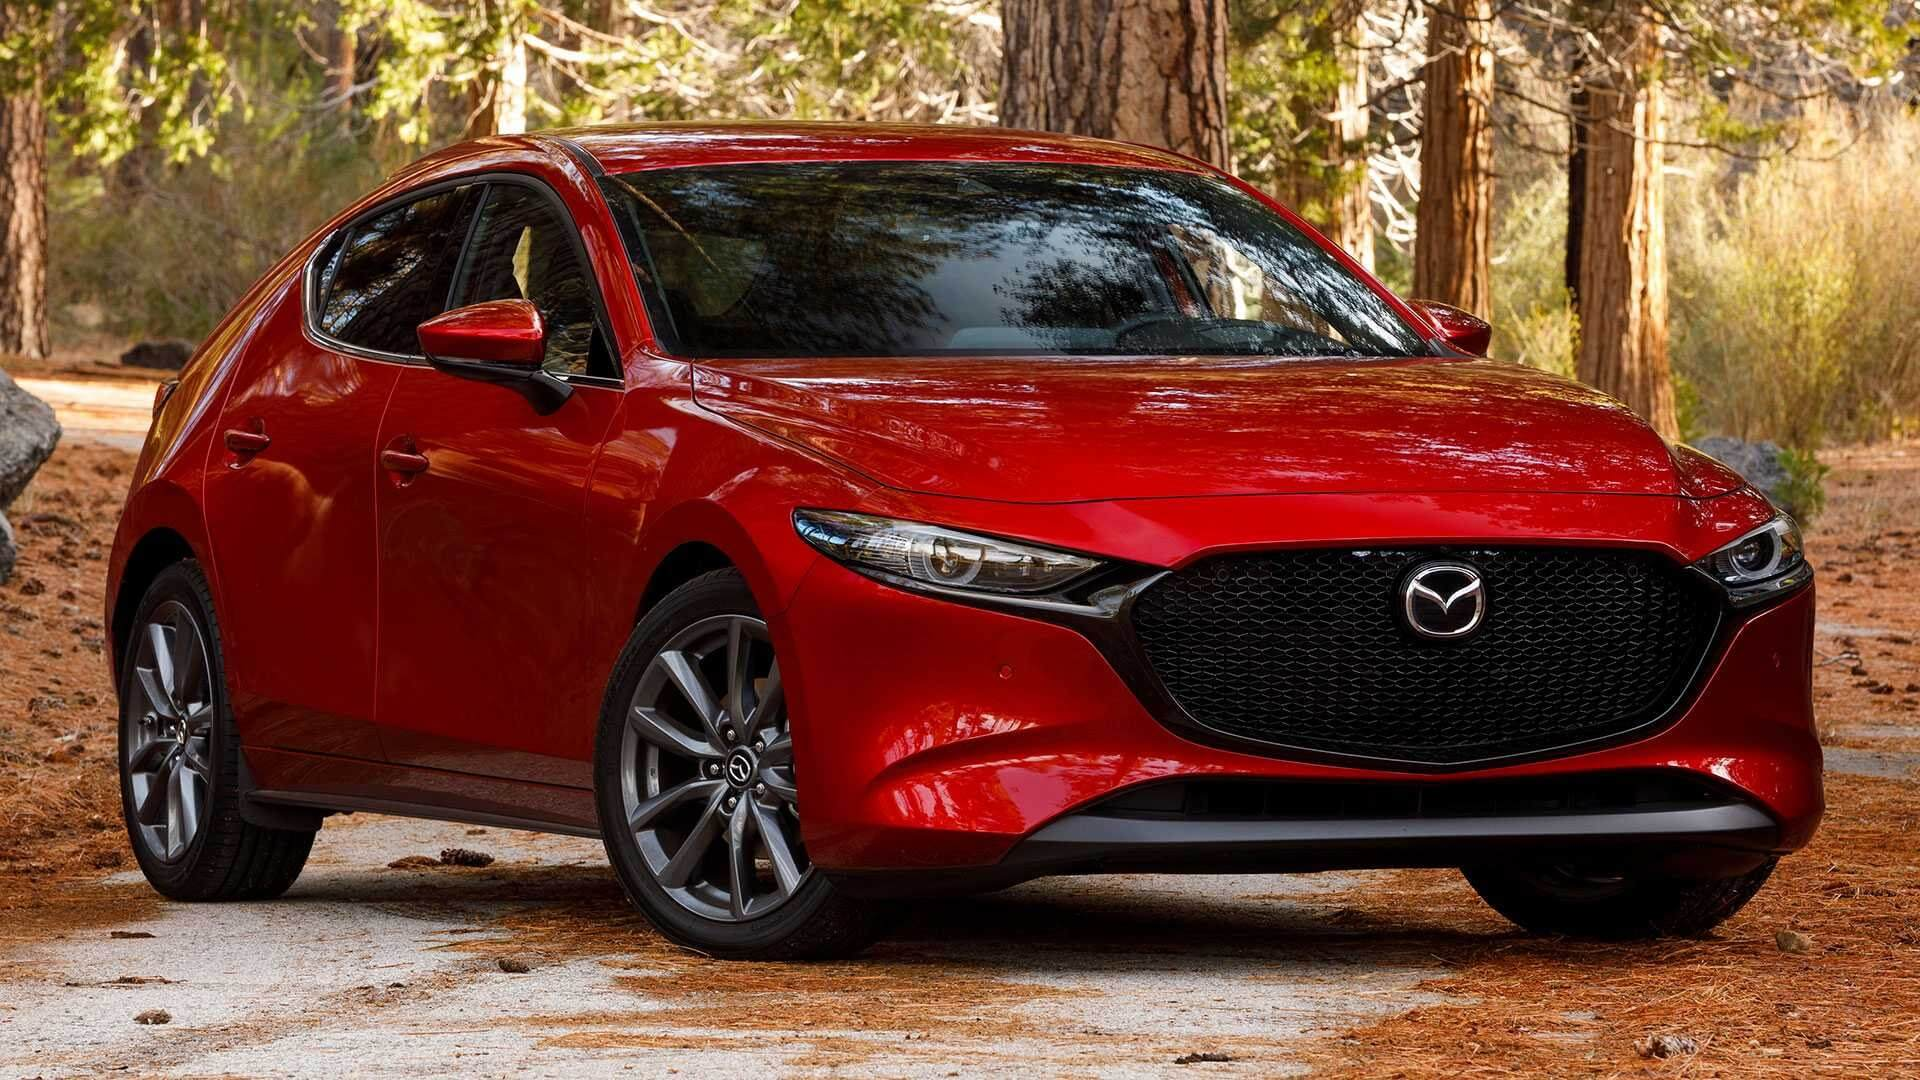 Mazda discloses safety defect that may cause cars to suddenly brake